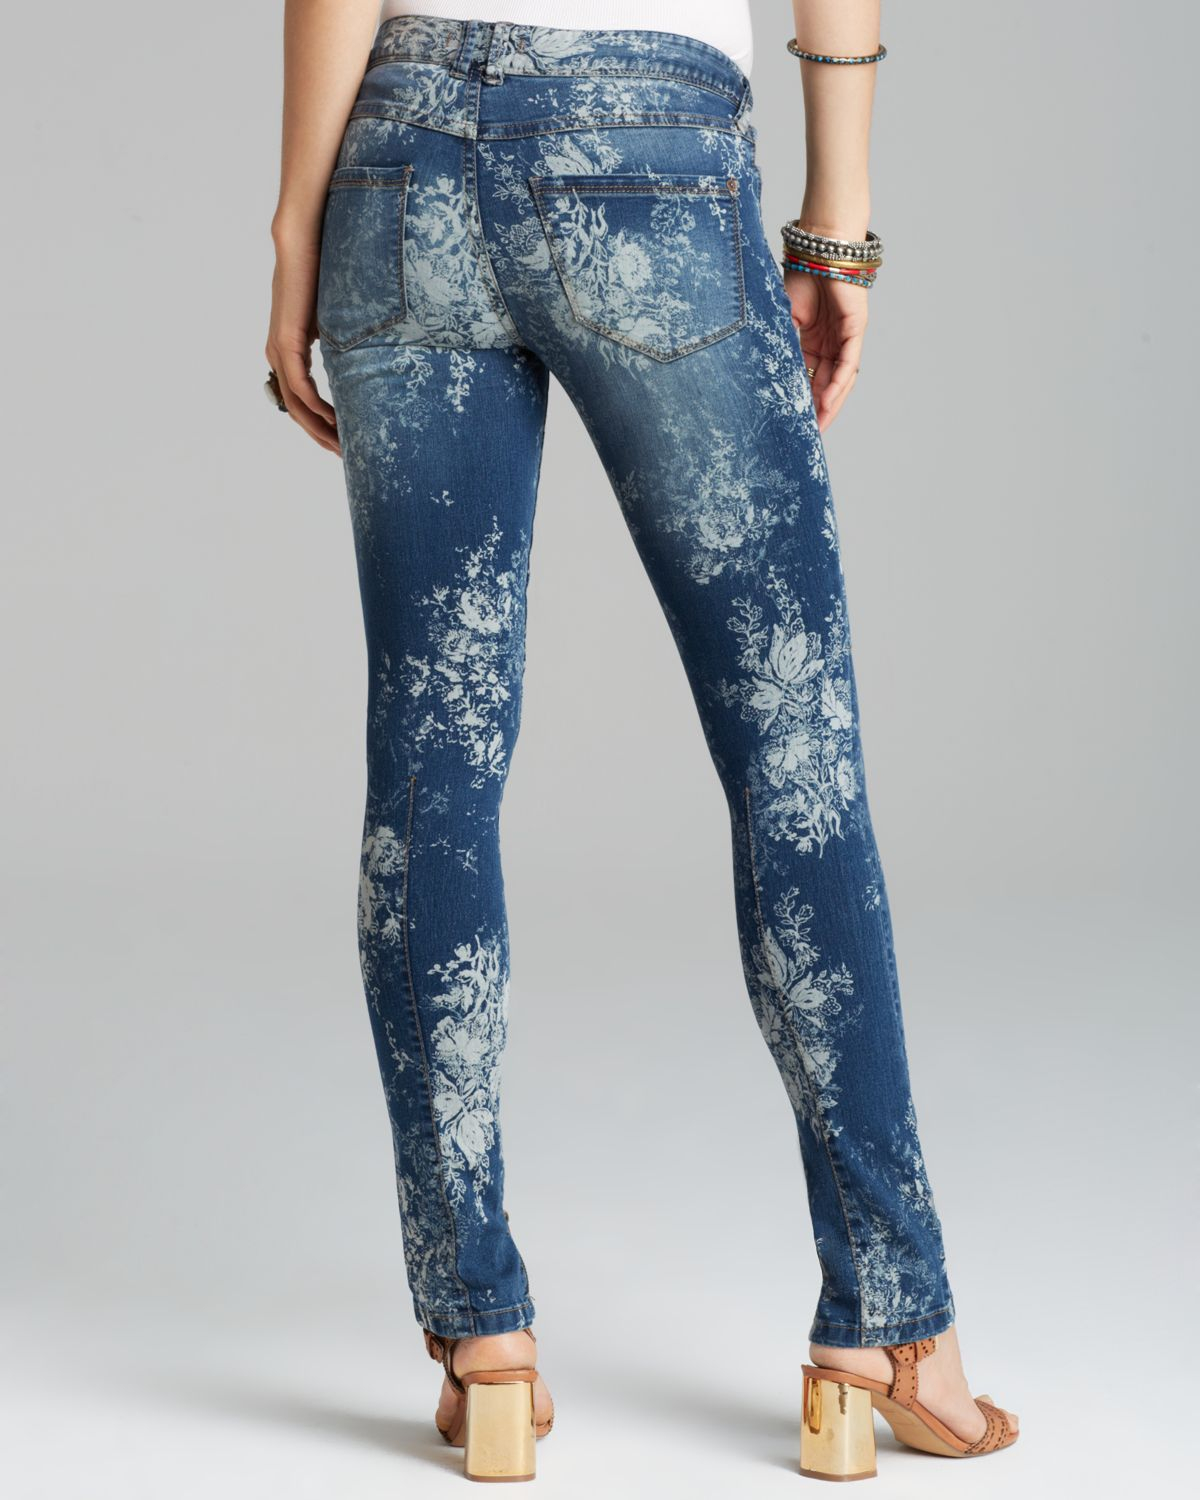 Perfect Fit Jeans For Women